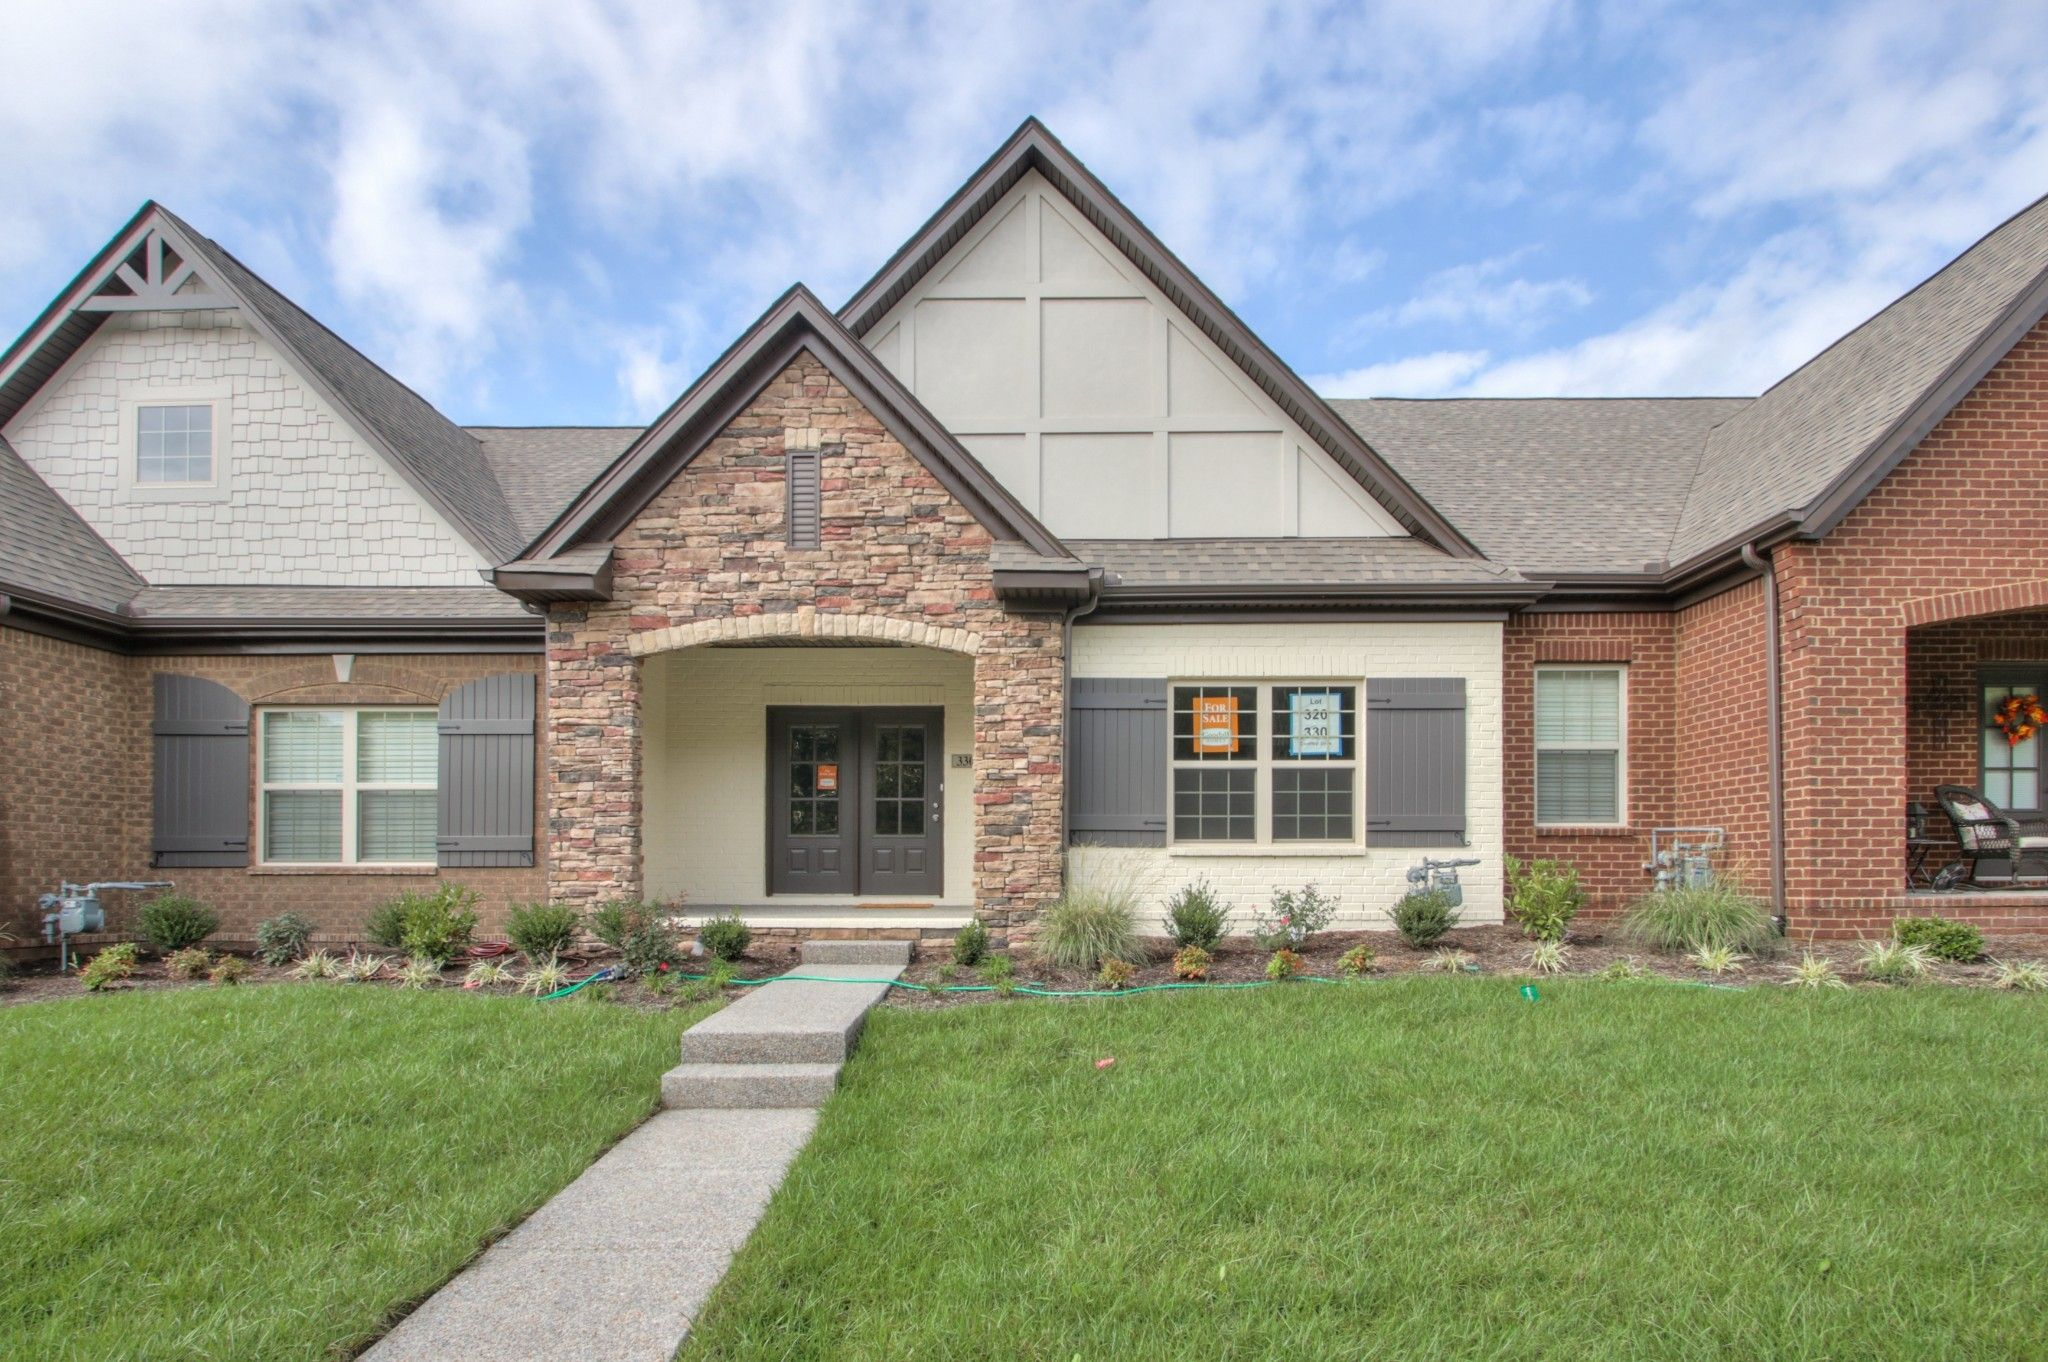 Exterior featured in The Ashleigh Courtyard Cottage By Goodall Homes in Knoxville, TN